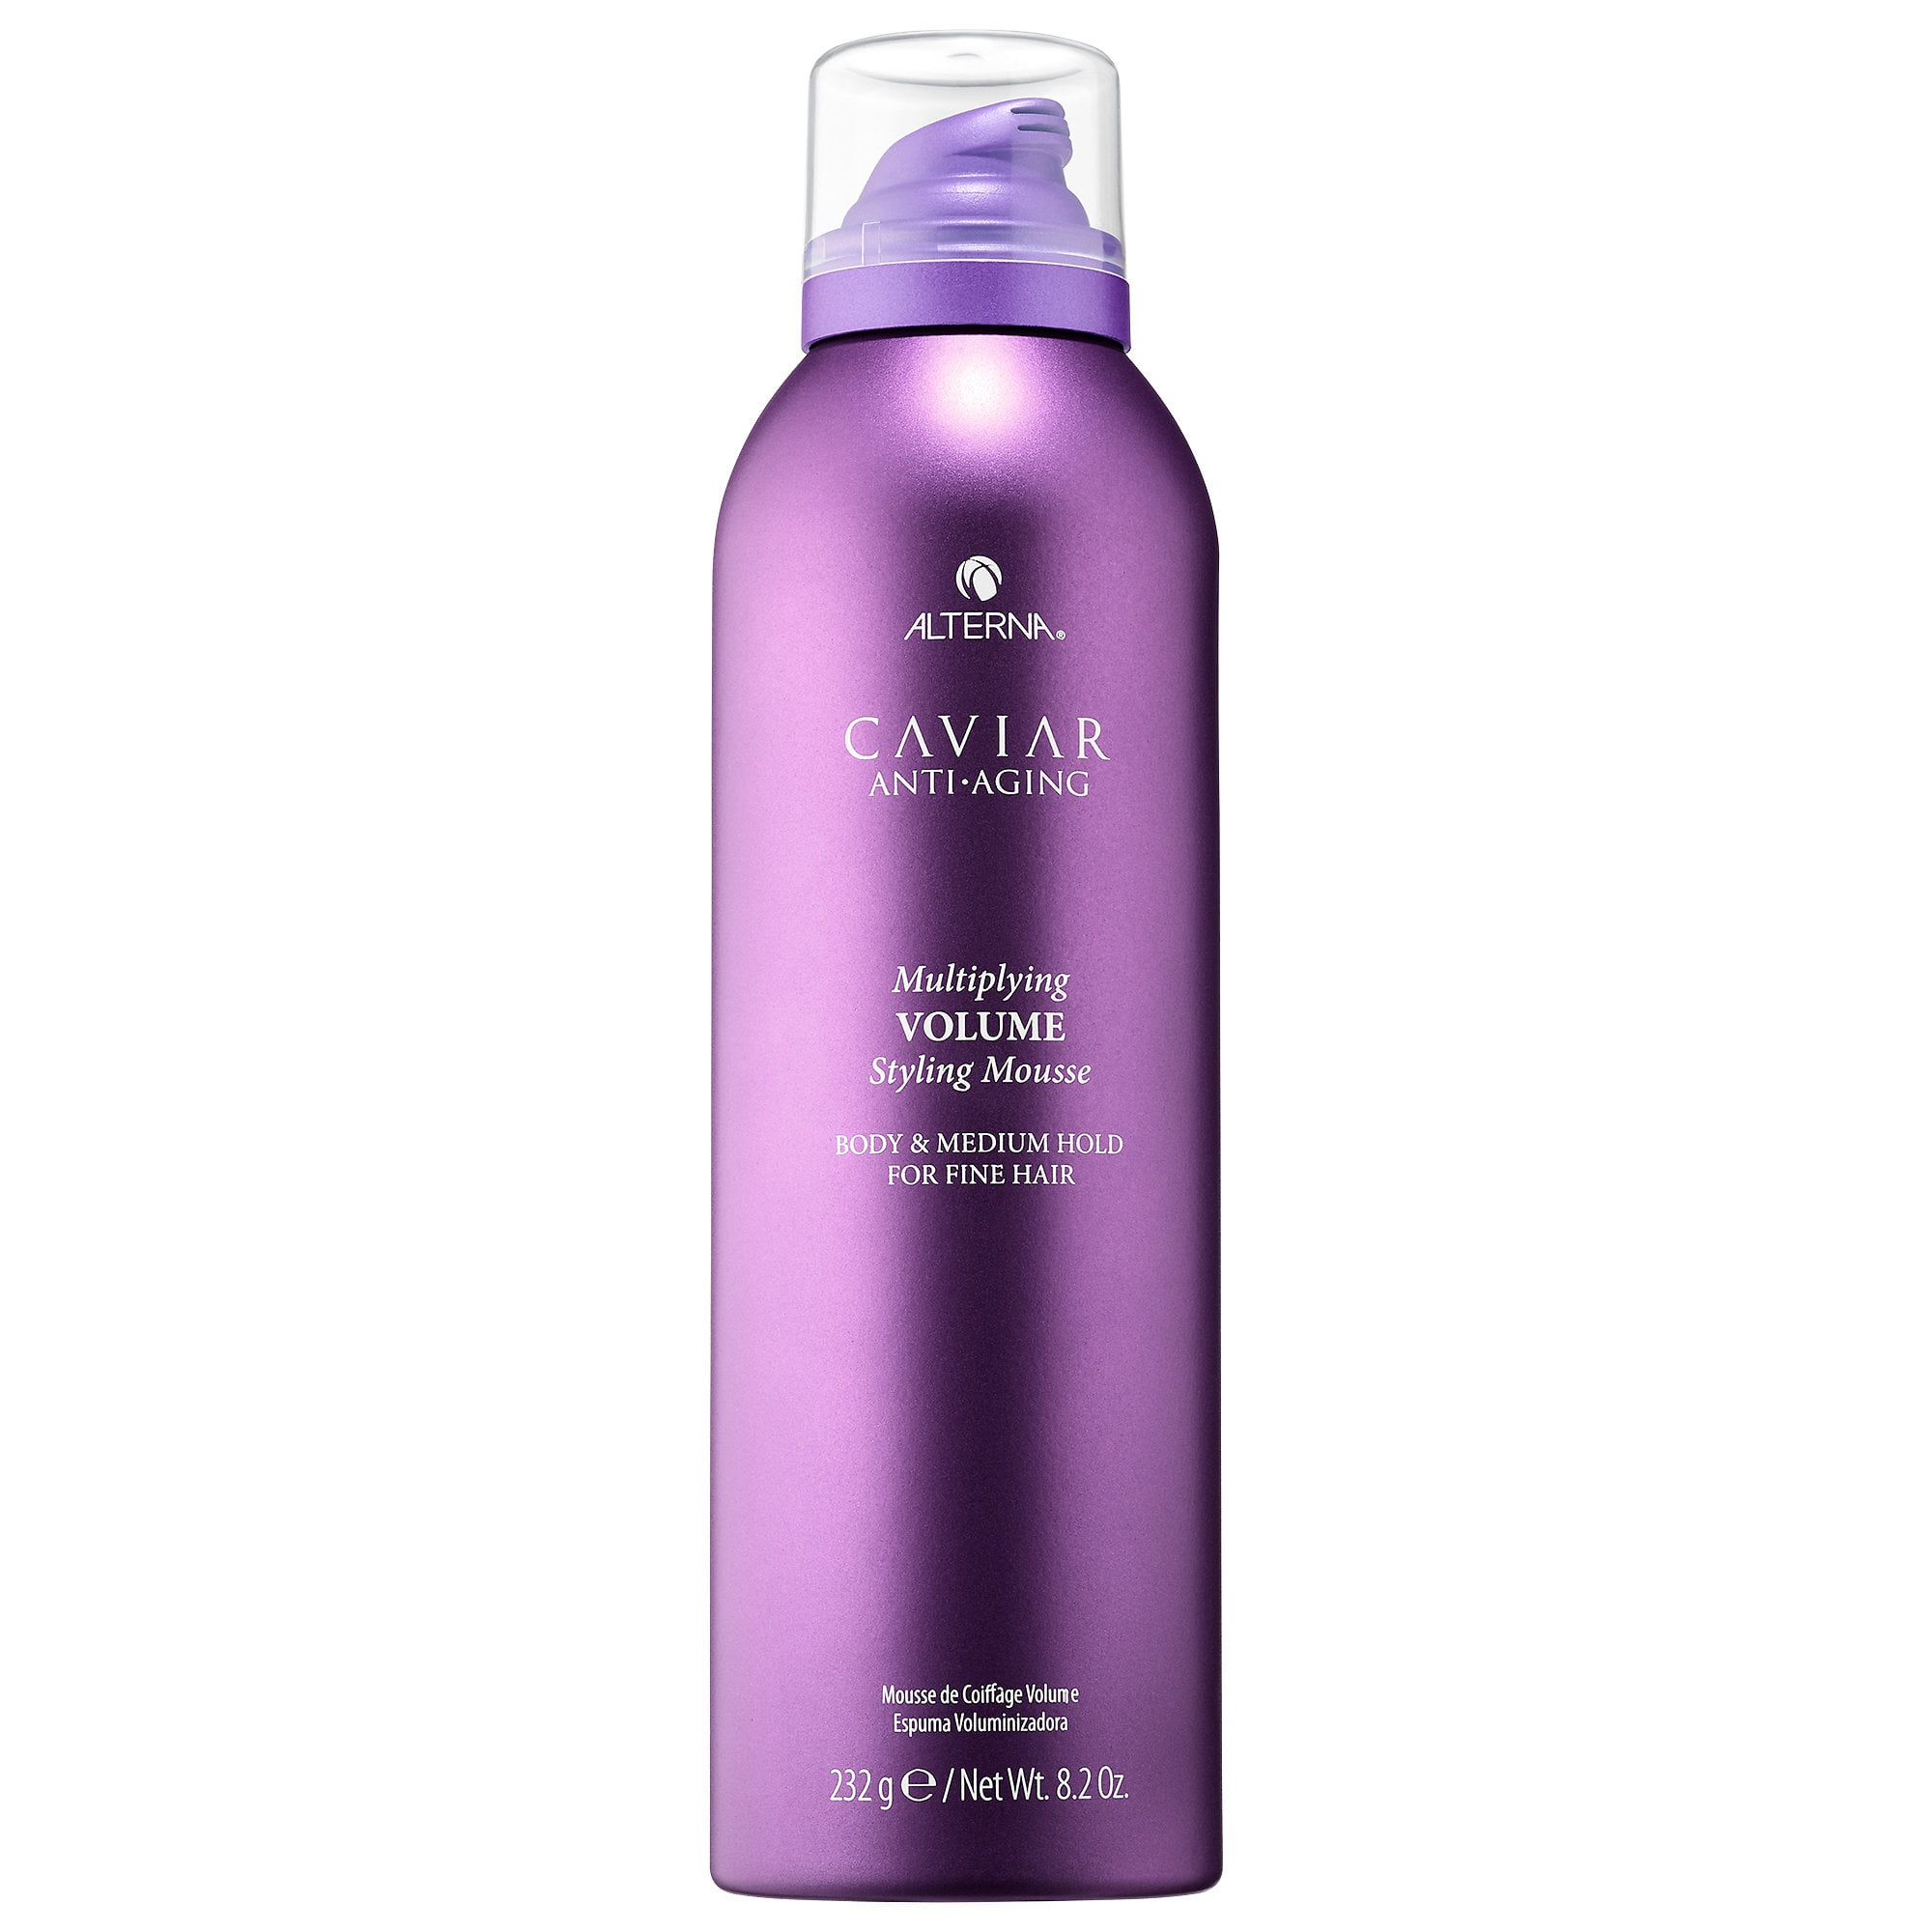 CAVIAR Anti-Aging® Multiplying Volume Styling Mousse